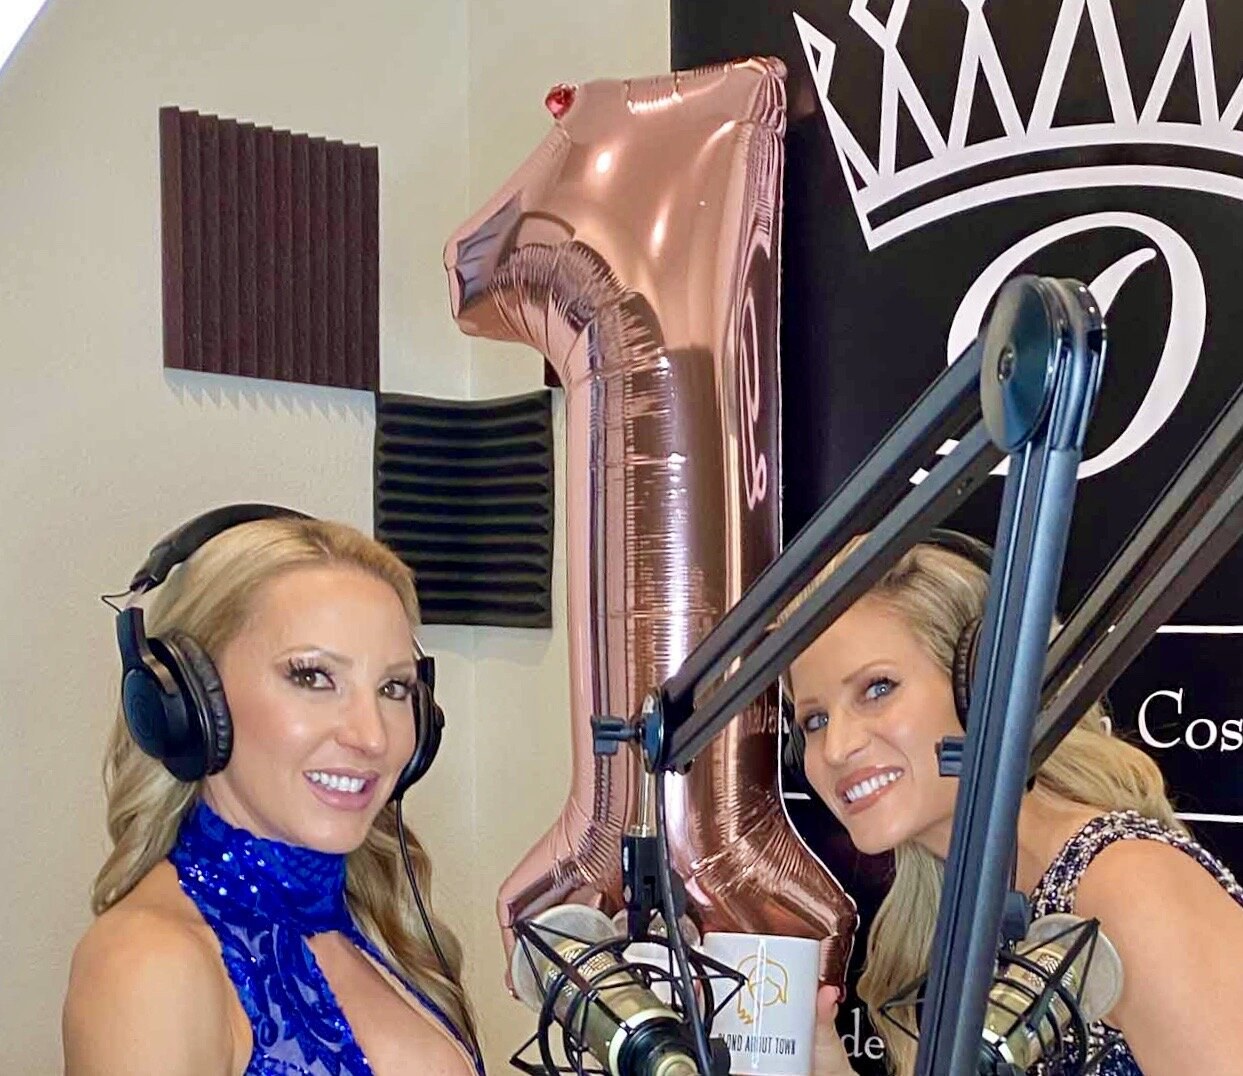 Glamour Gains vegas beauty blogger podcast studio Blond About Town Eve Dawes